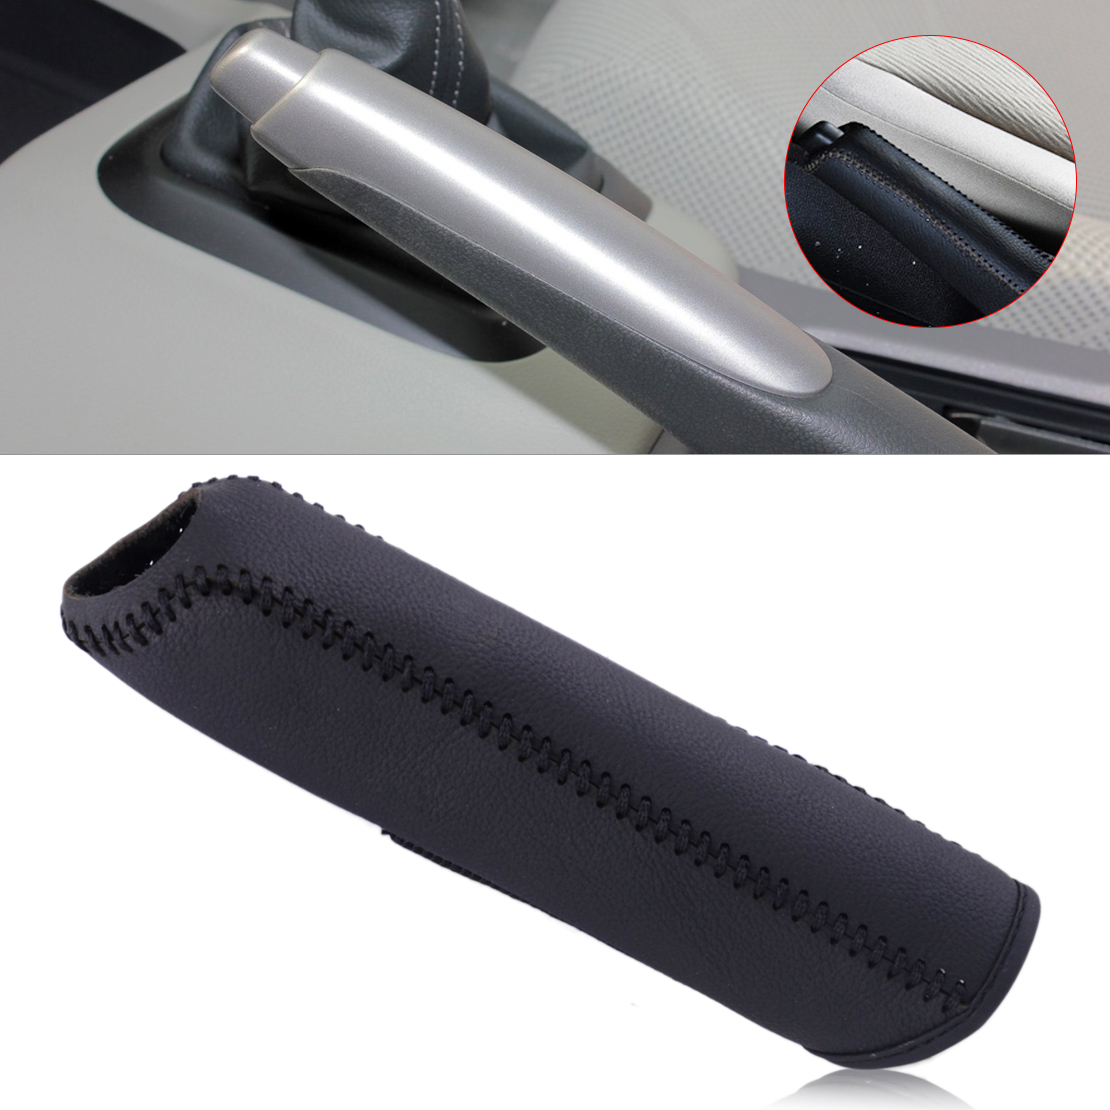 DWCX Fashion Car Black Leather Hand Brake Stitching Cover Protective Sleeve For Honda Civic 2004 2005 2006 2007 2008 2009 - 2011